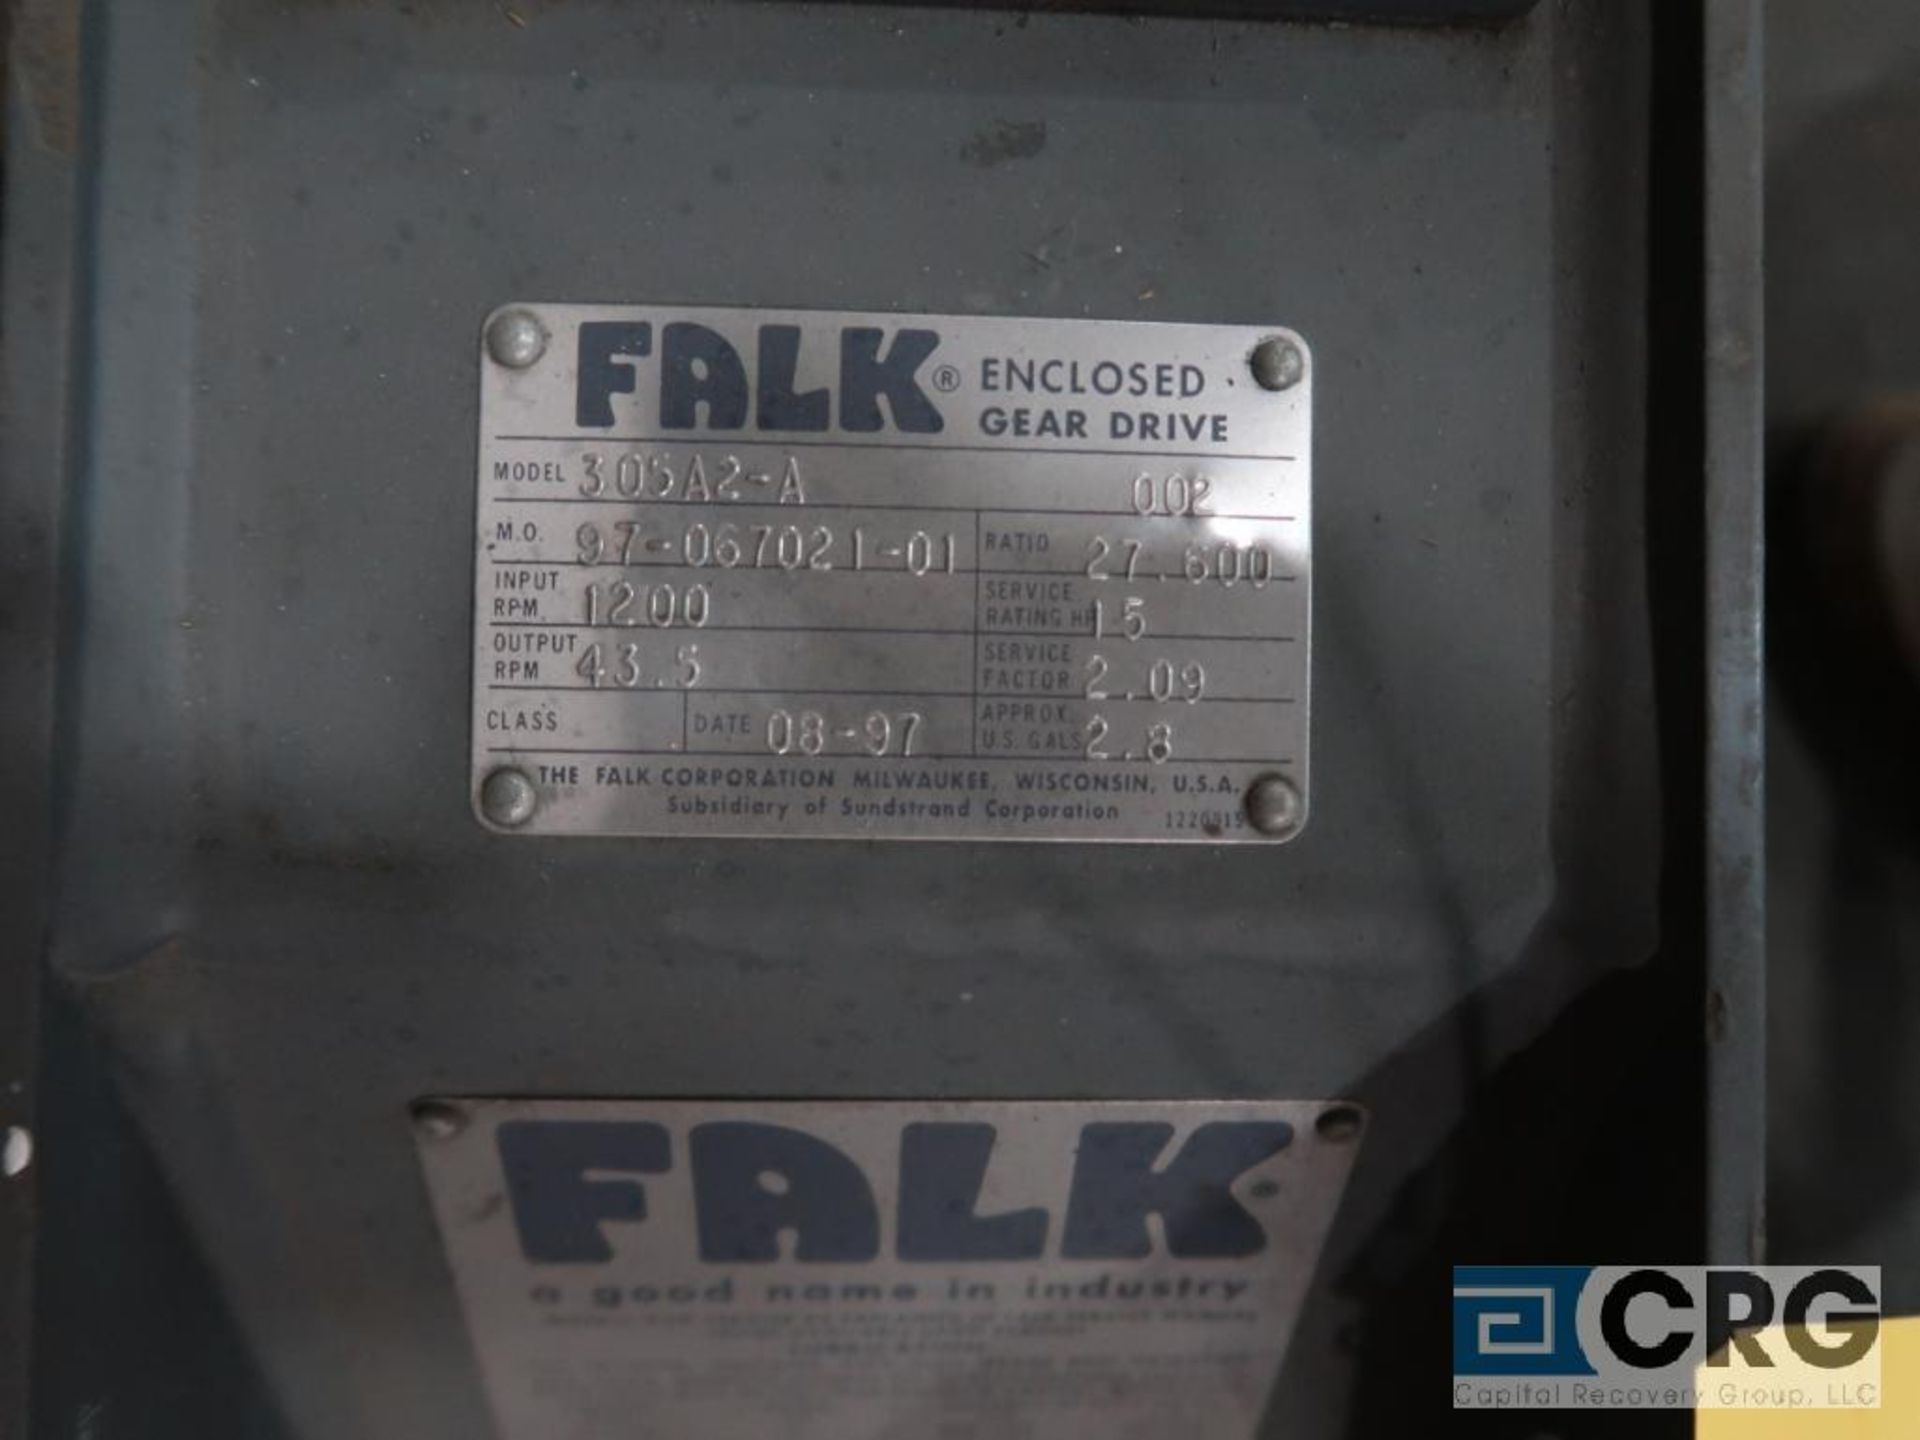 Falk 305 A2A parallel gear drive, ratio 27.600, 43.5 RPM, s/n 7021-11 (Finish Building) - Image 2 of 2